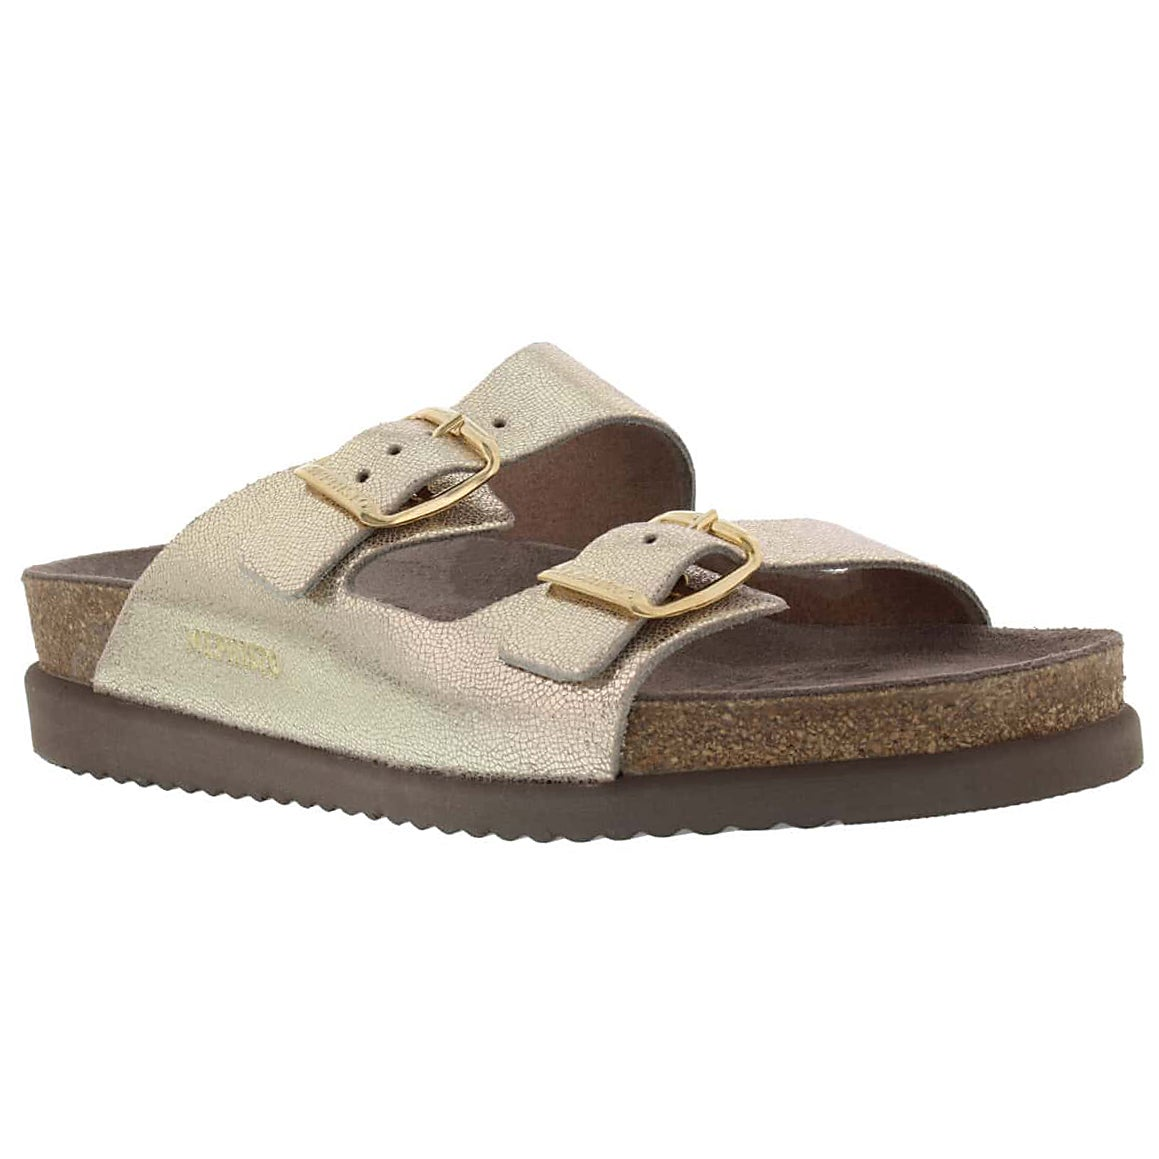 Women's HARMONY platinum cork footbed sandals